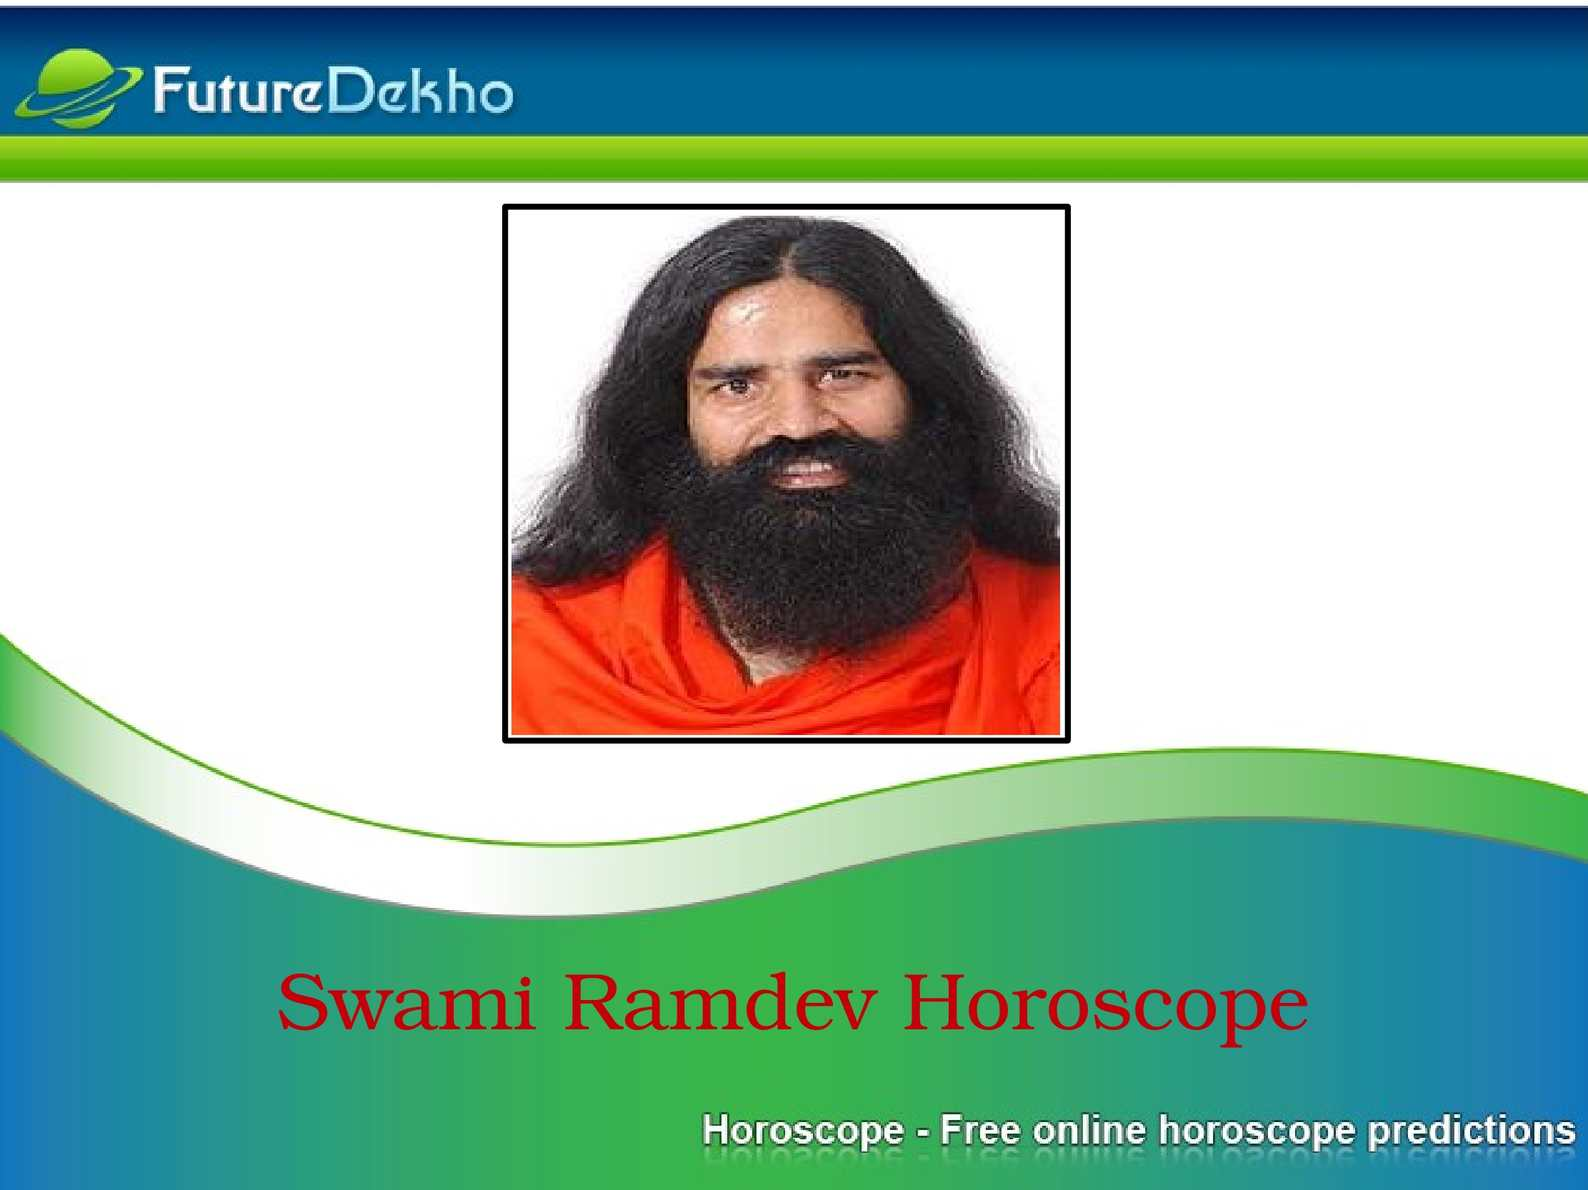 Calaméo   Know More About Swami Ramdev Horoscope